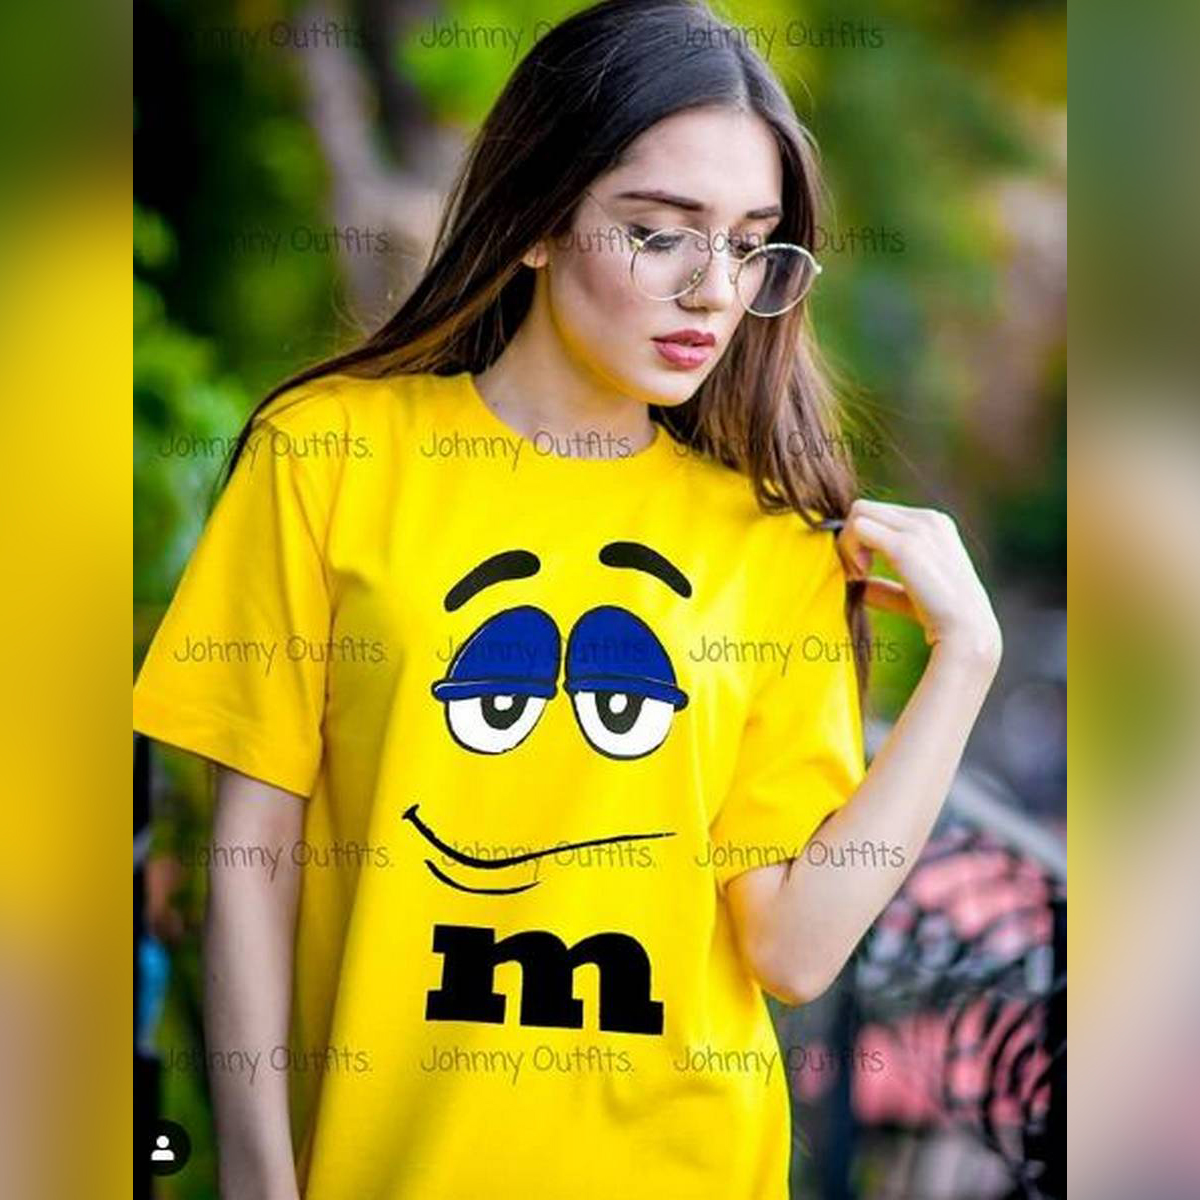 Sleepy eyes Yellow Half Sleeve Printed T-shirt For Women Casual Cotton tshirts For Lady Top Teee